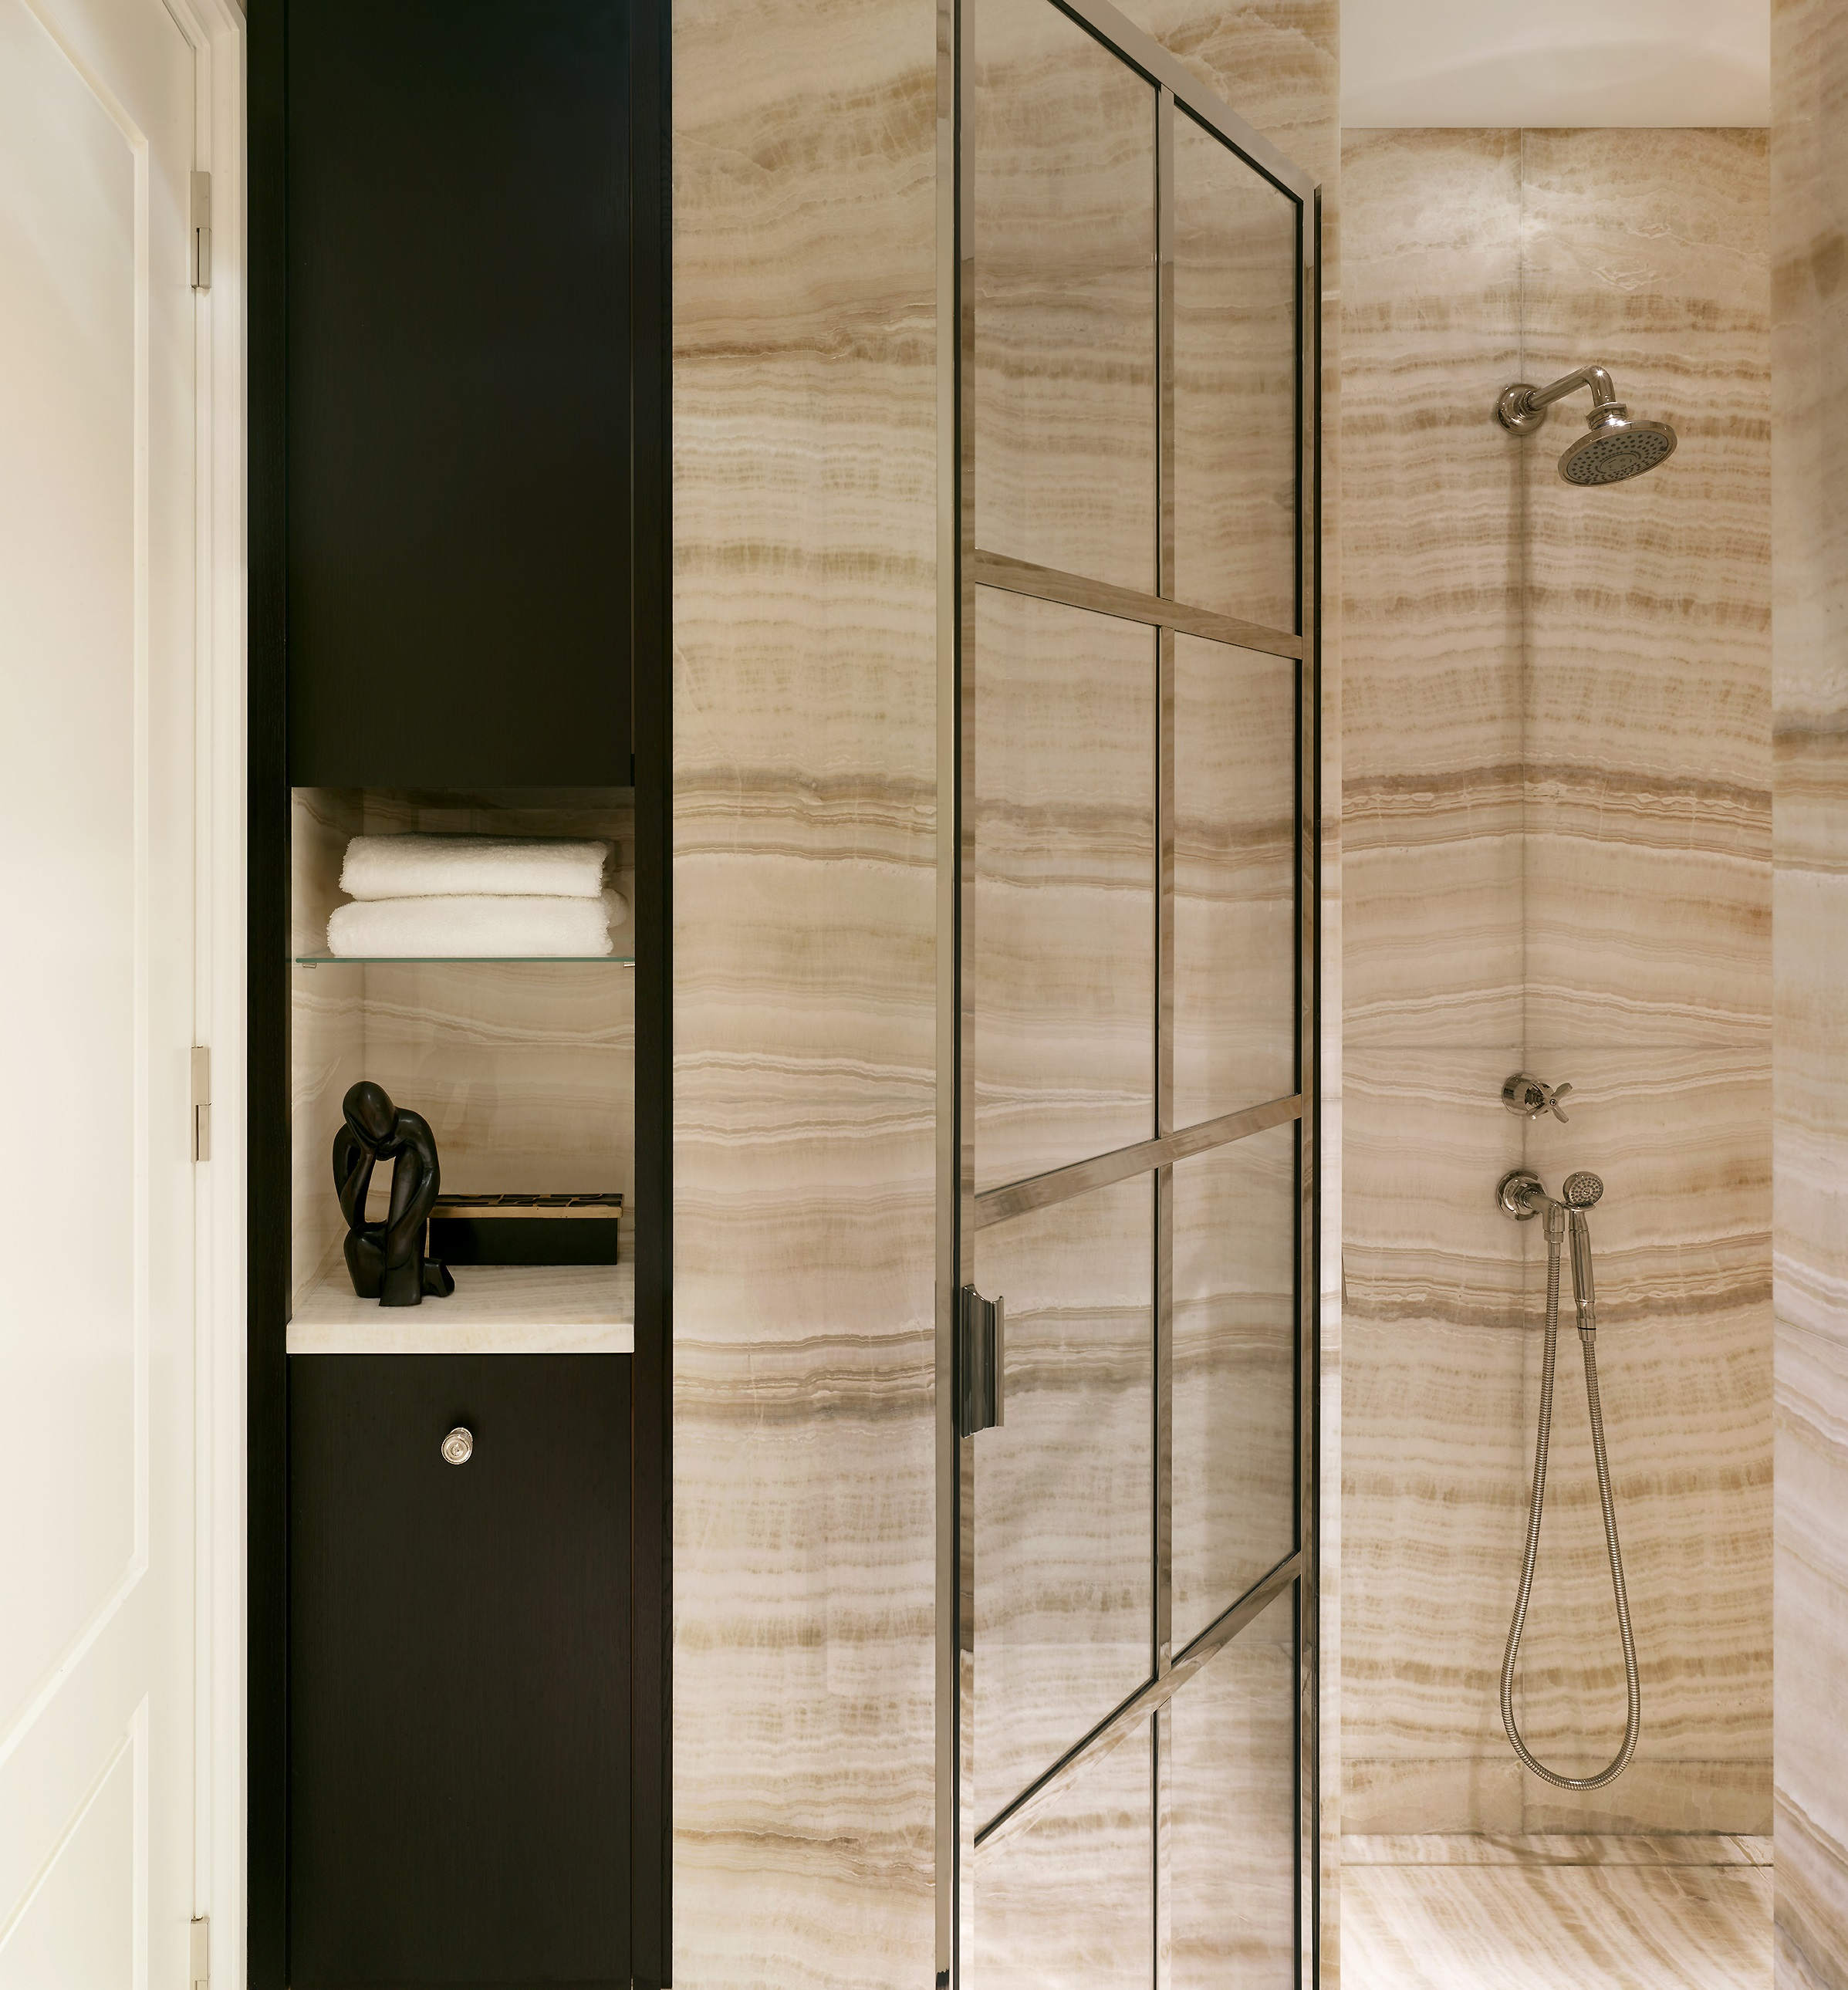 Stonefox 115 East 67th Street Bathroom Shower MEP designed by 2L Engineering